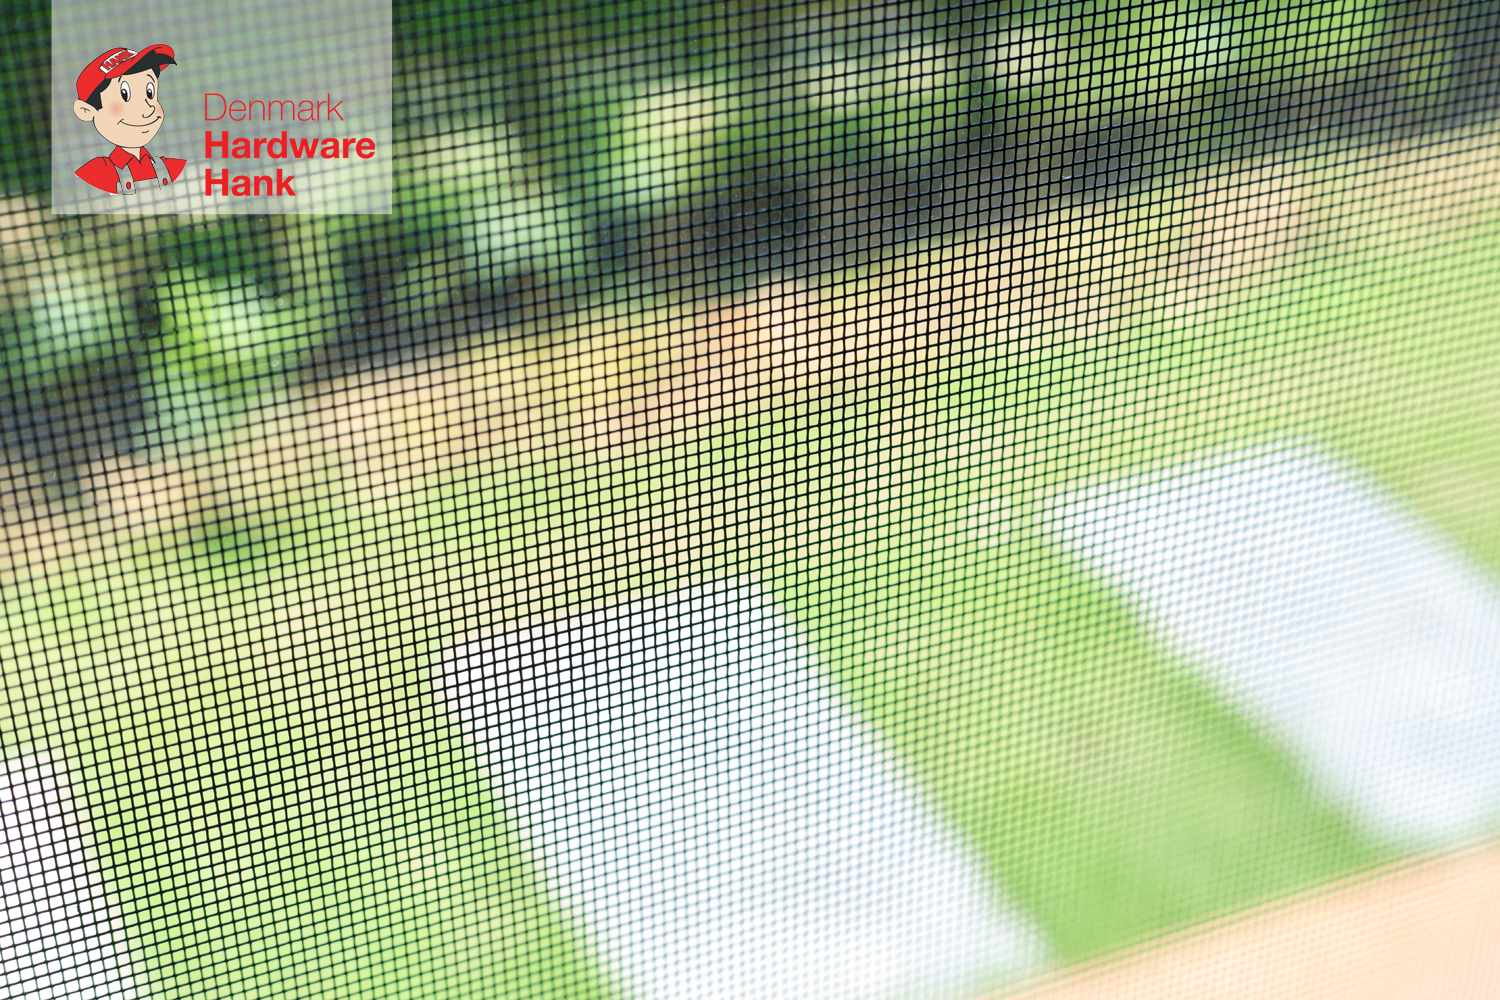 Denmark Hardware Hank door mosquito wire screen steel net protection from small insect